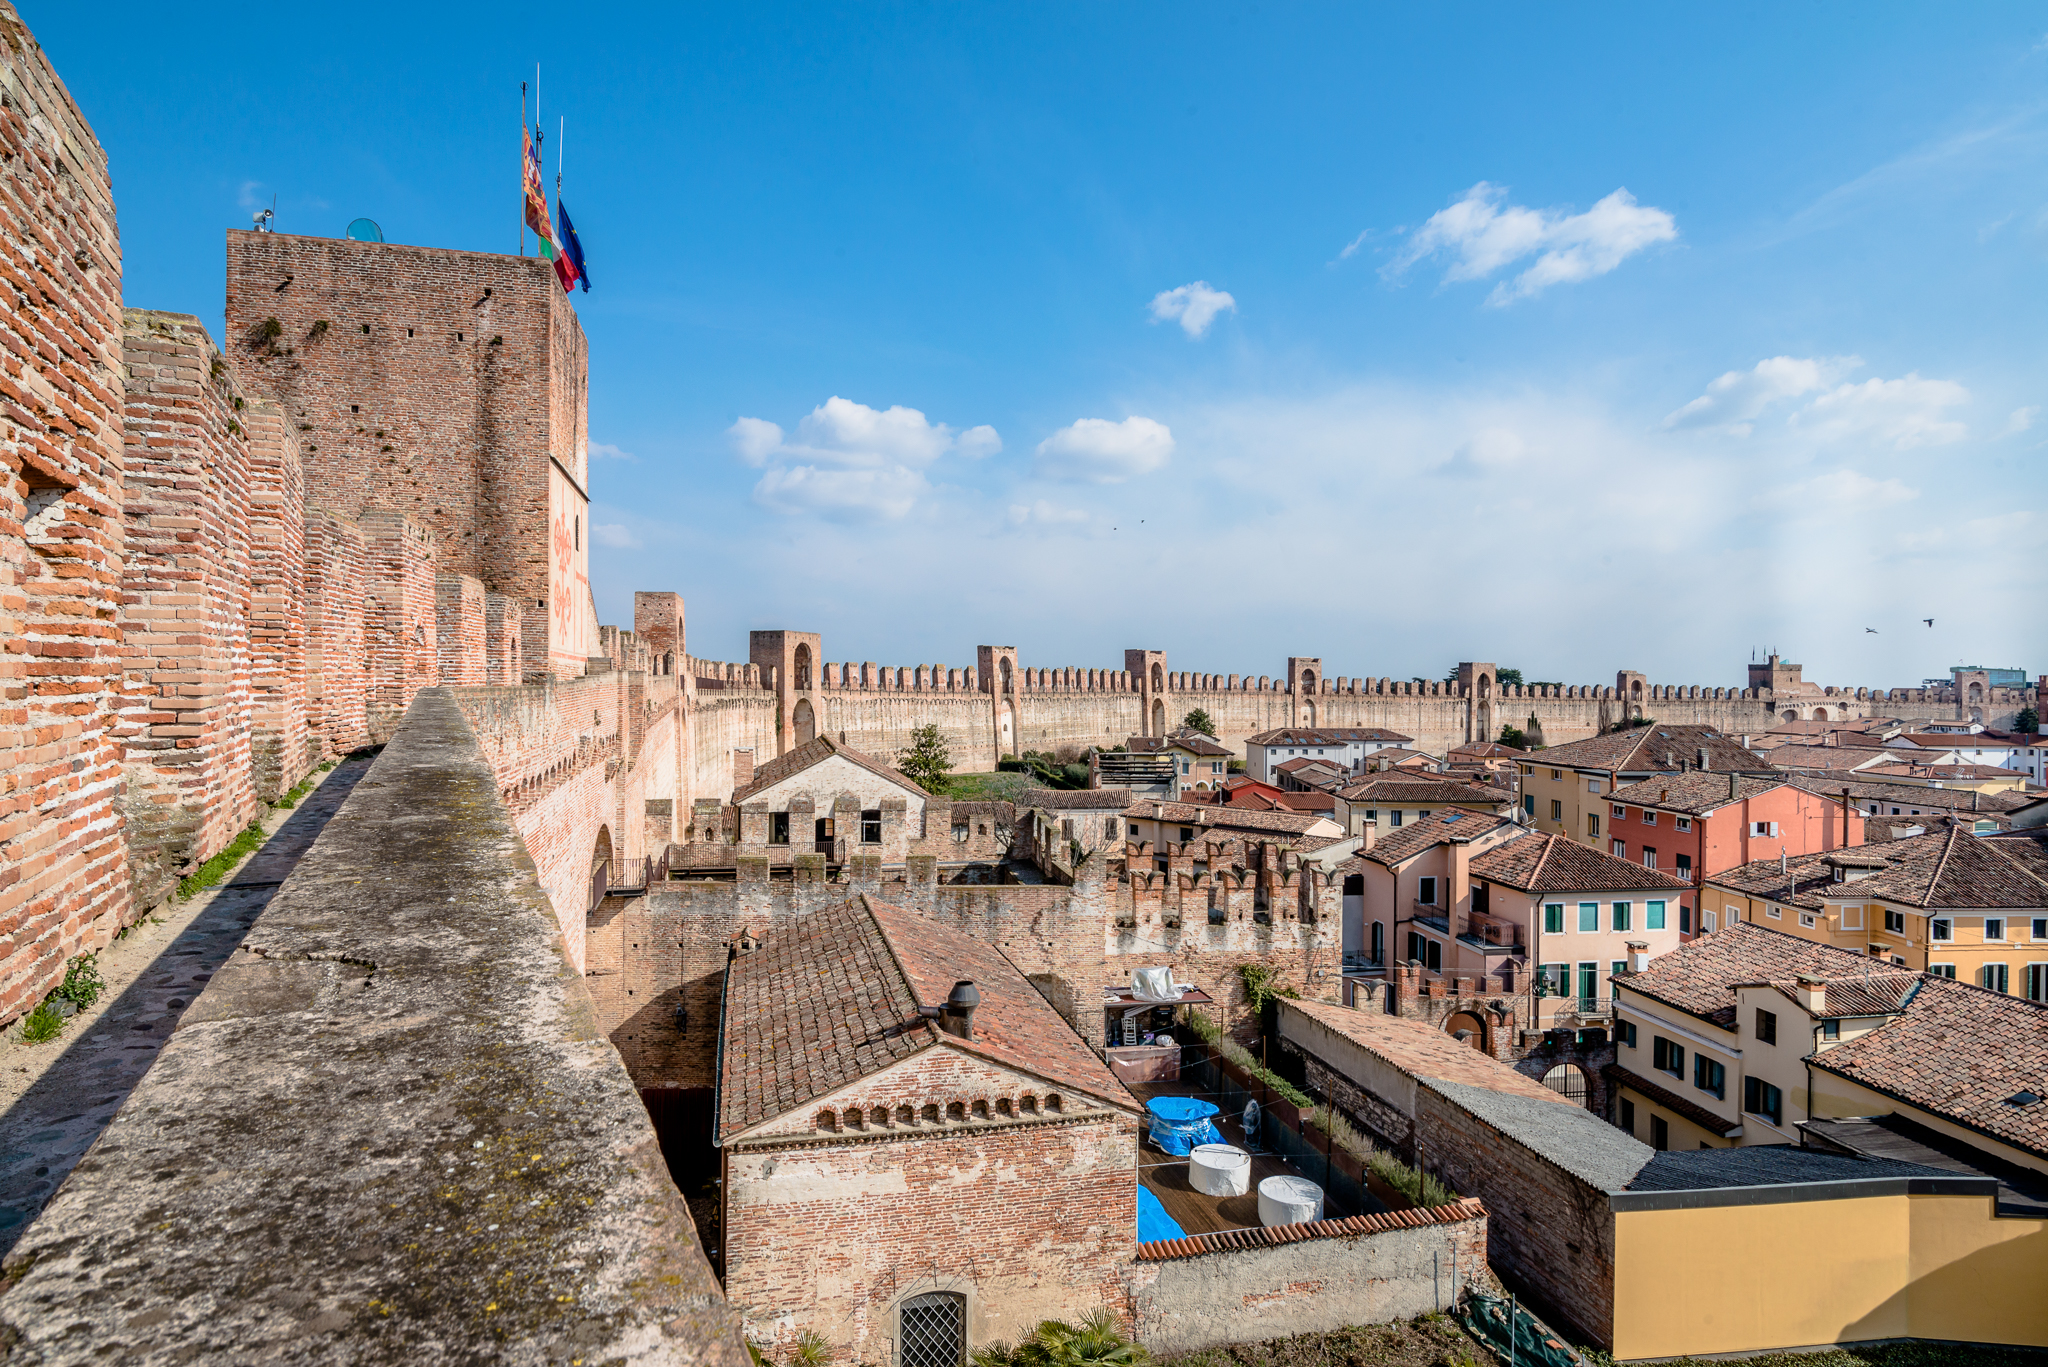 View from the medieval walls at Citadella center